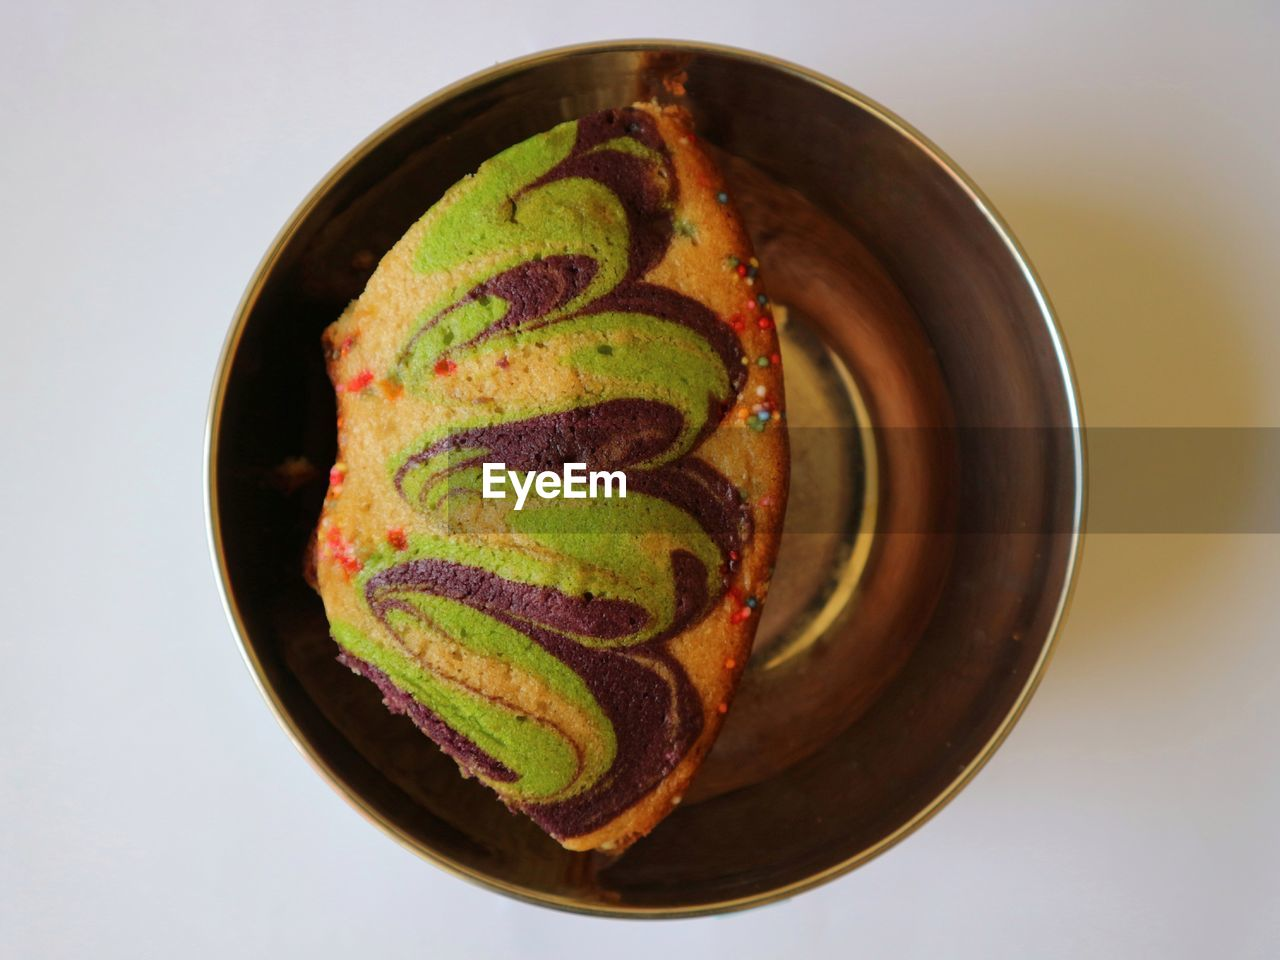 HIGH ANGLE VIEW OF DESSERT IN PLATE